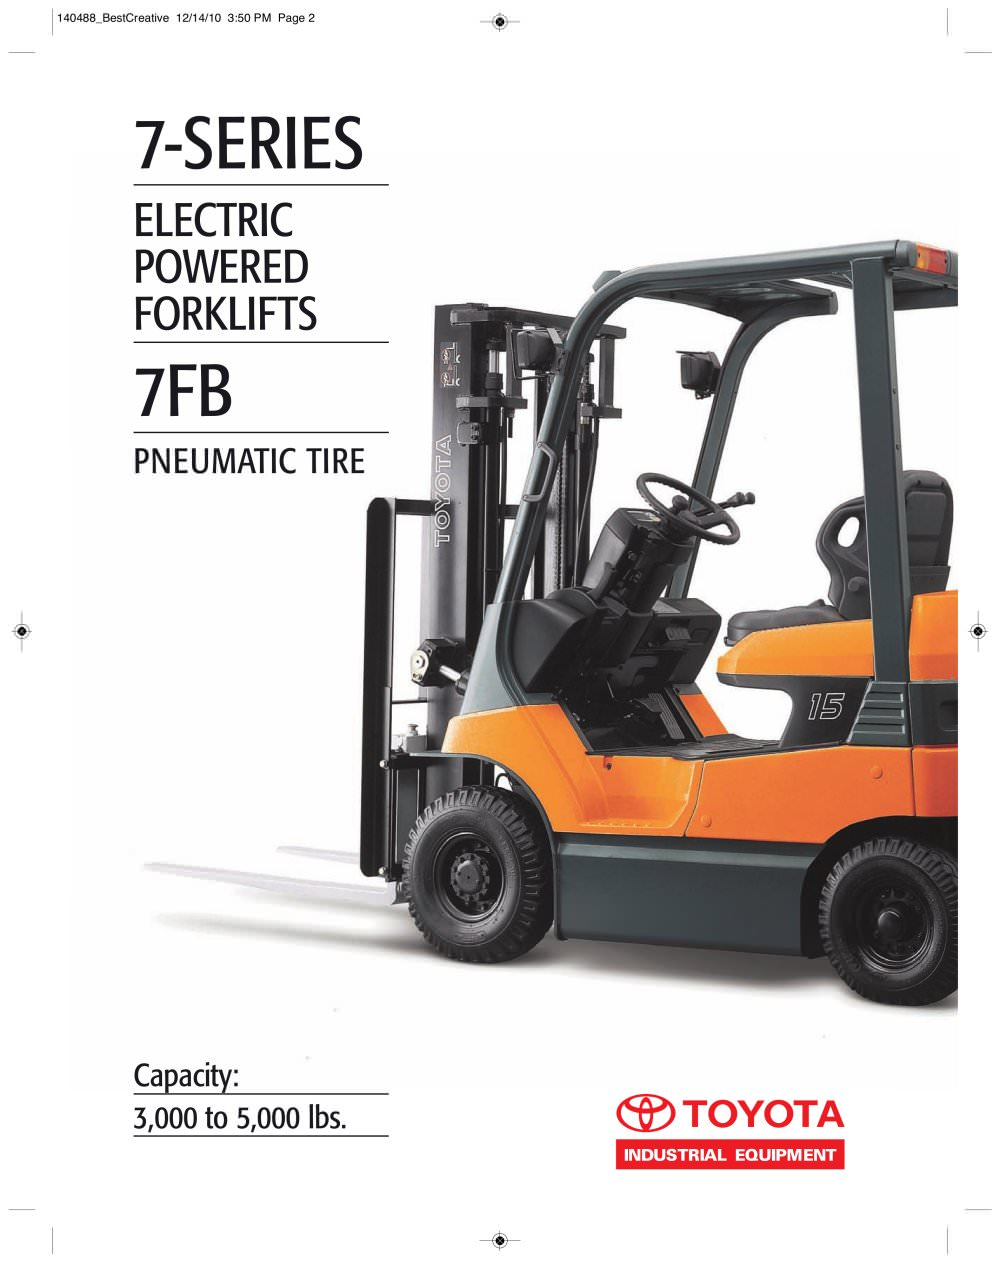 7-Series Electric AC Pneumatic - 1 / 12 Pages